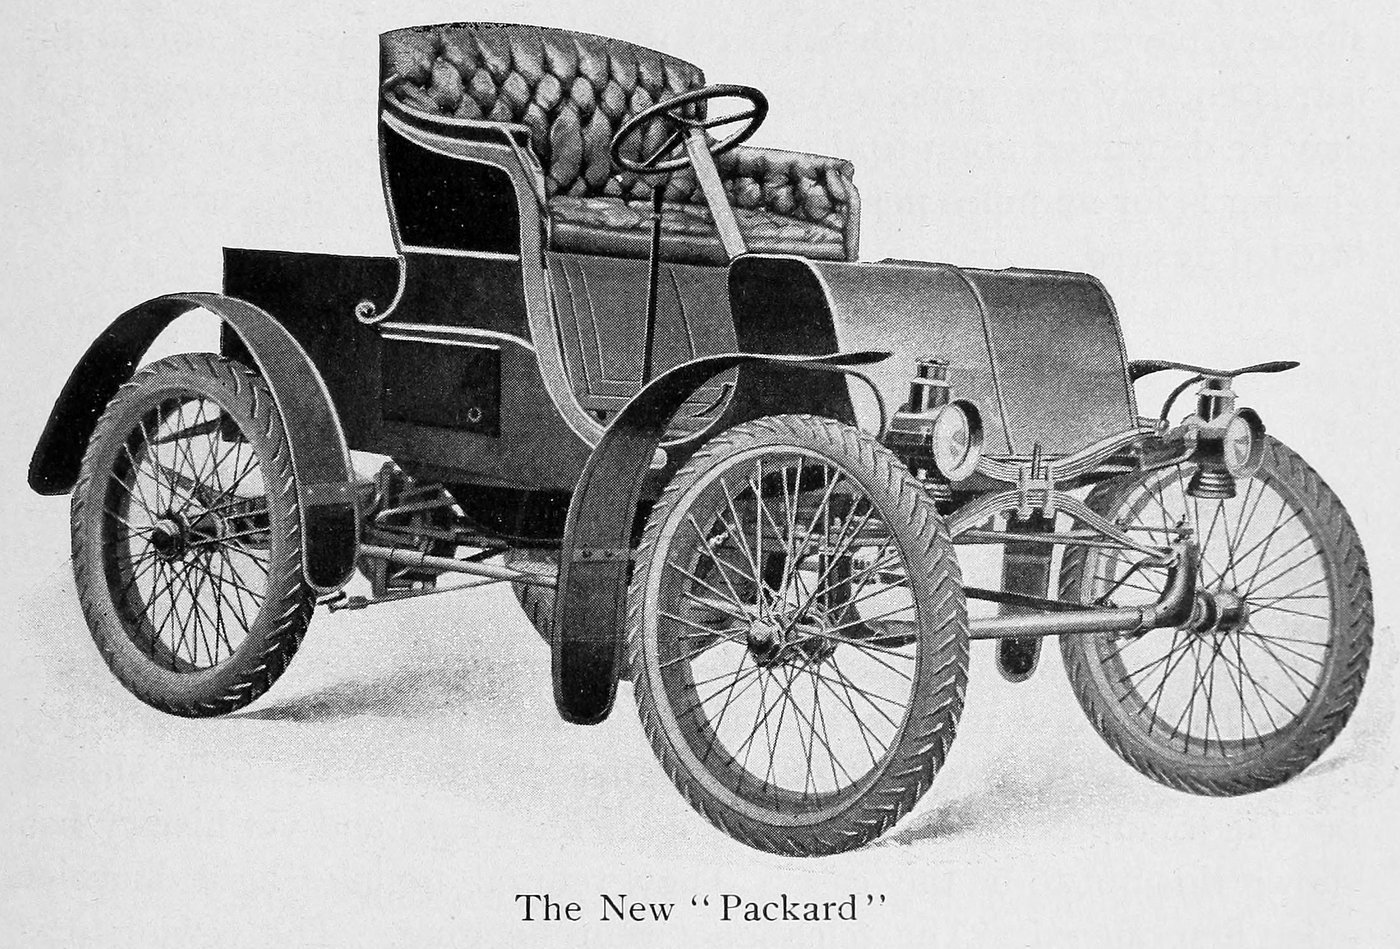 The New Packard (1901)